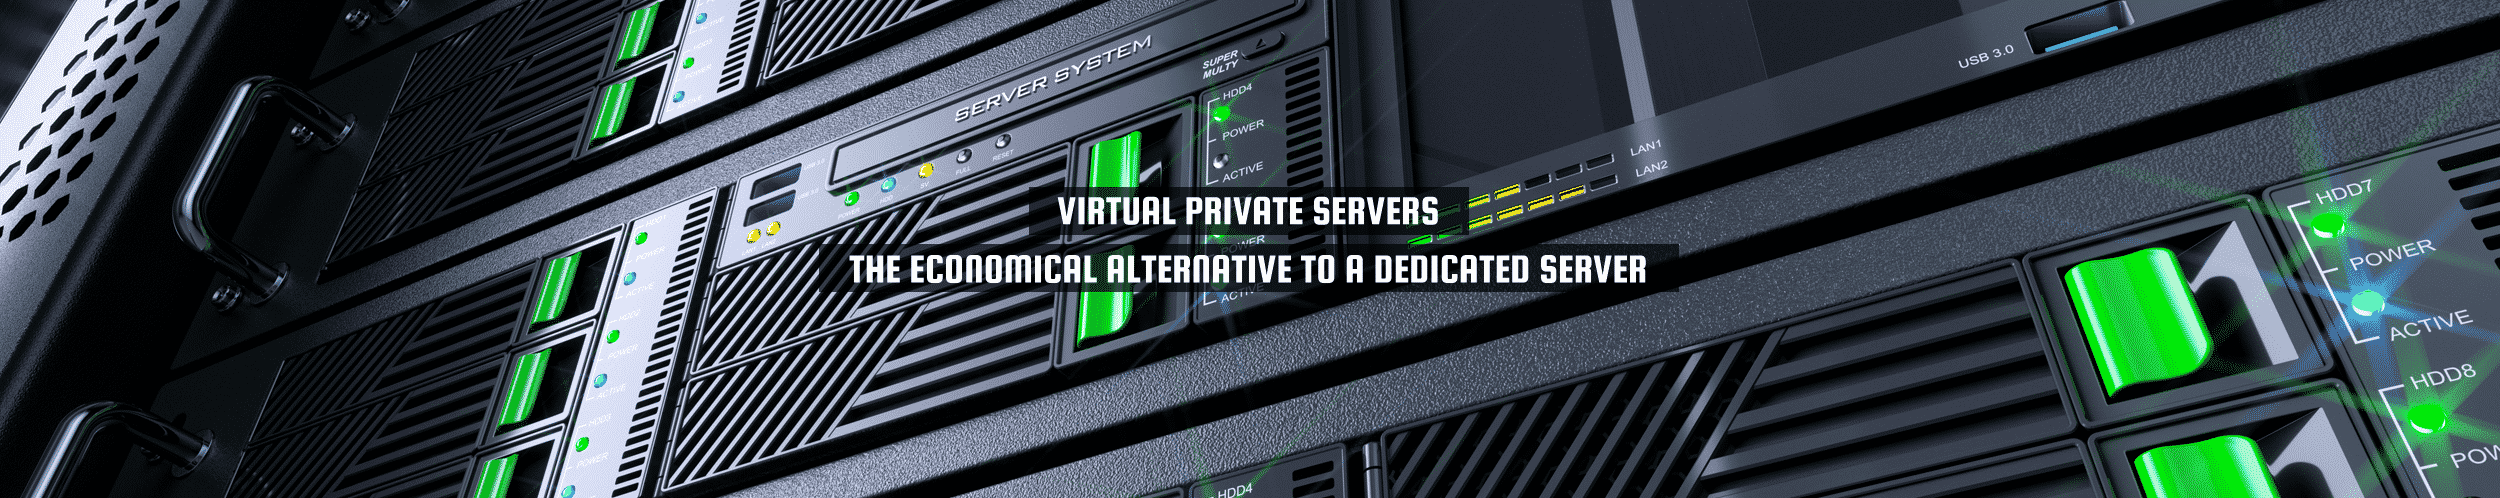 "52Degrees Virtual Hosting - immagine caratteristica | ""server privati ​​virtuali - l'alternativa economica a un server dedicato"" 